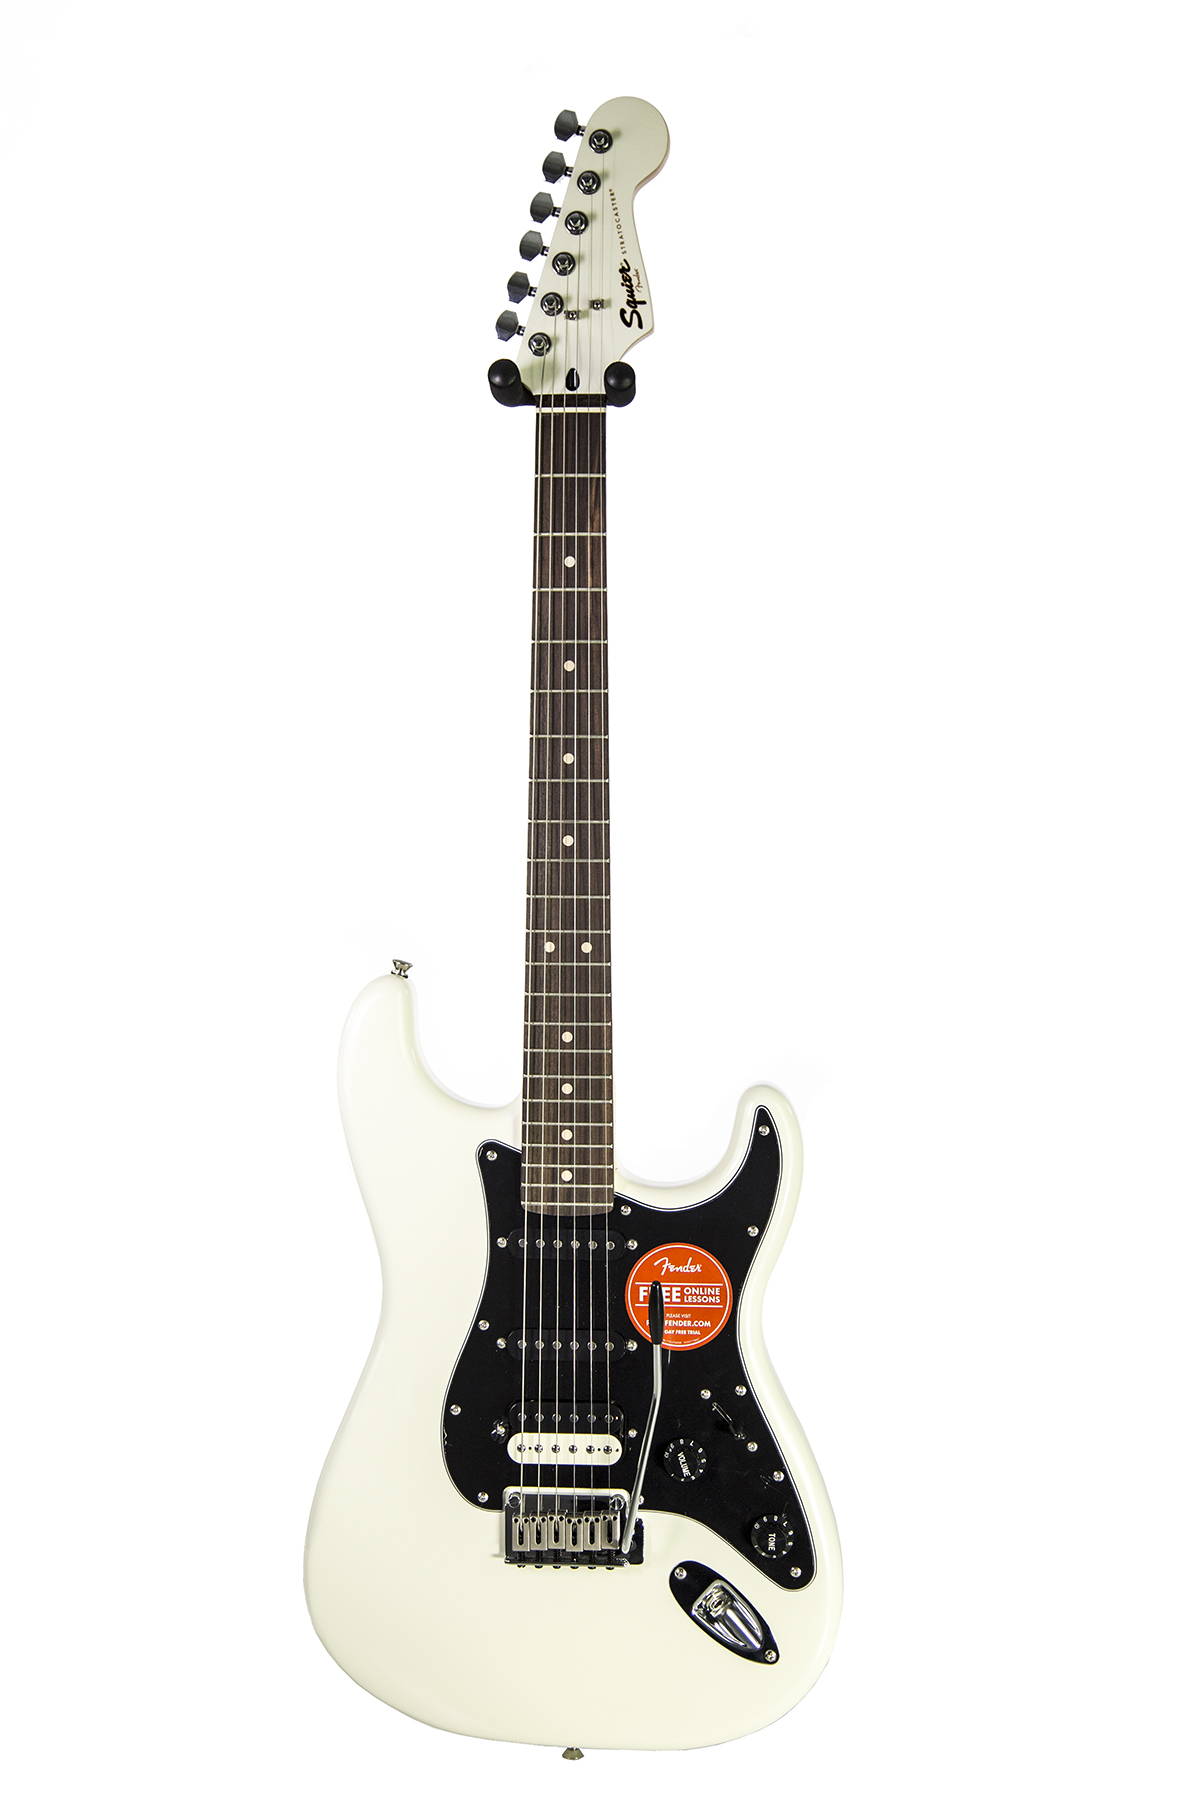 brand new fender squier contemporary stratocaster hss pearl white electric guitar new york. Black Bedroom Furniture Sets. Home Design Ideas